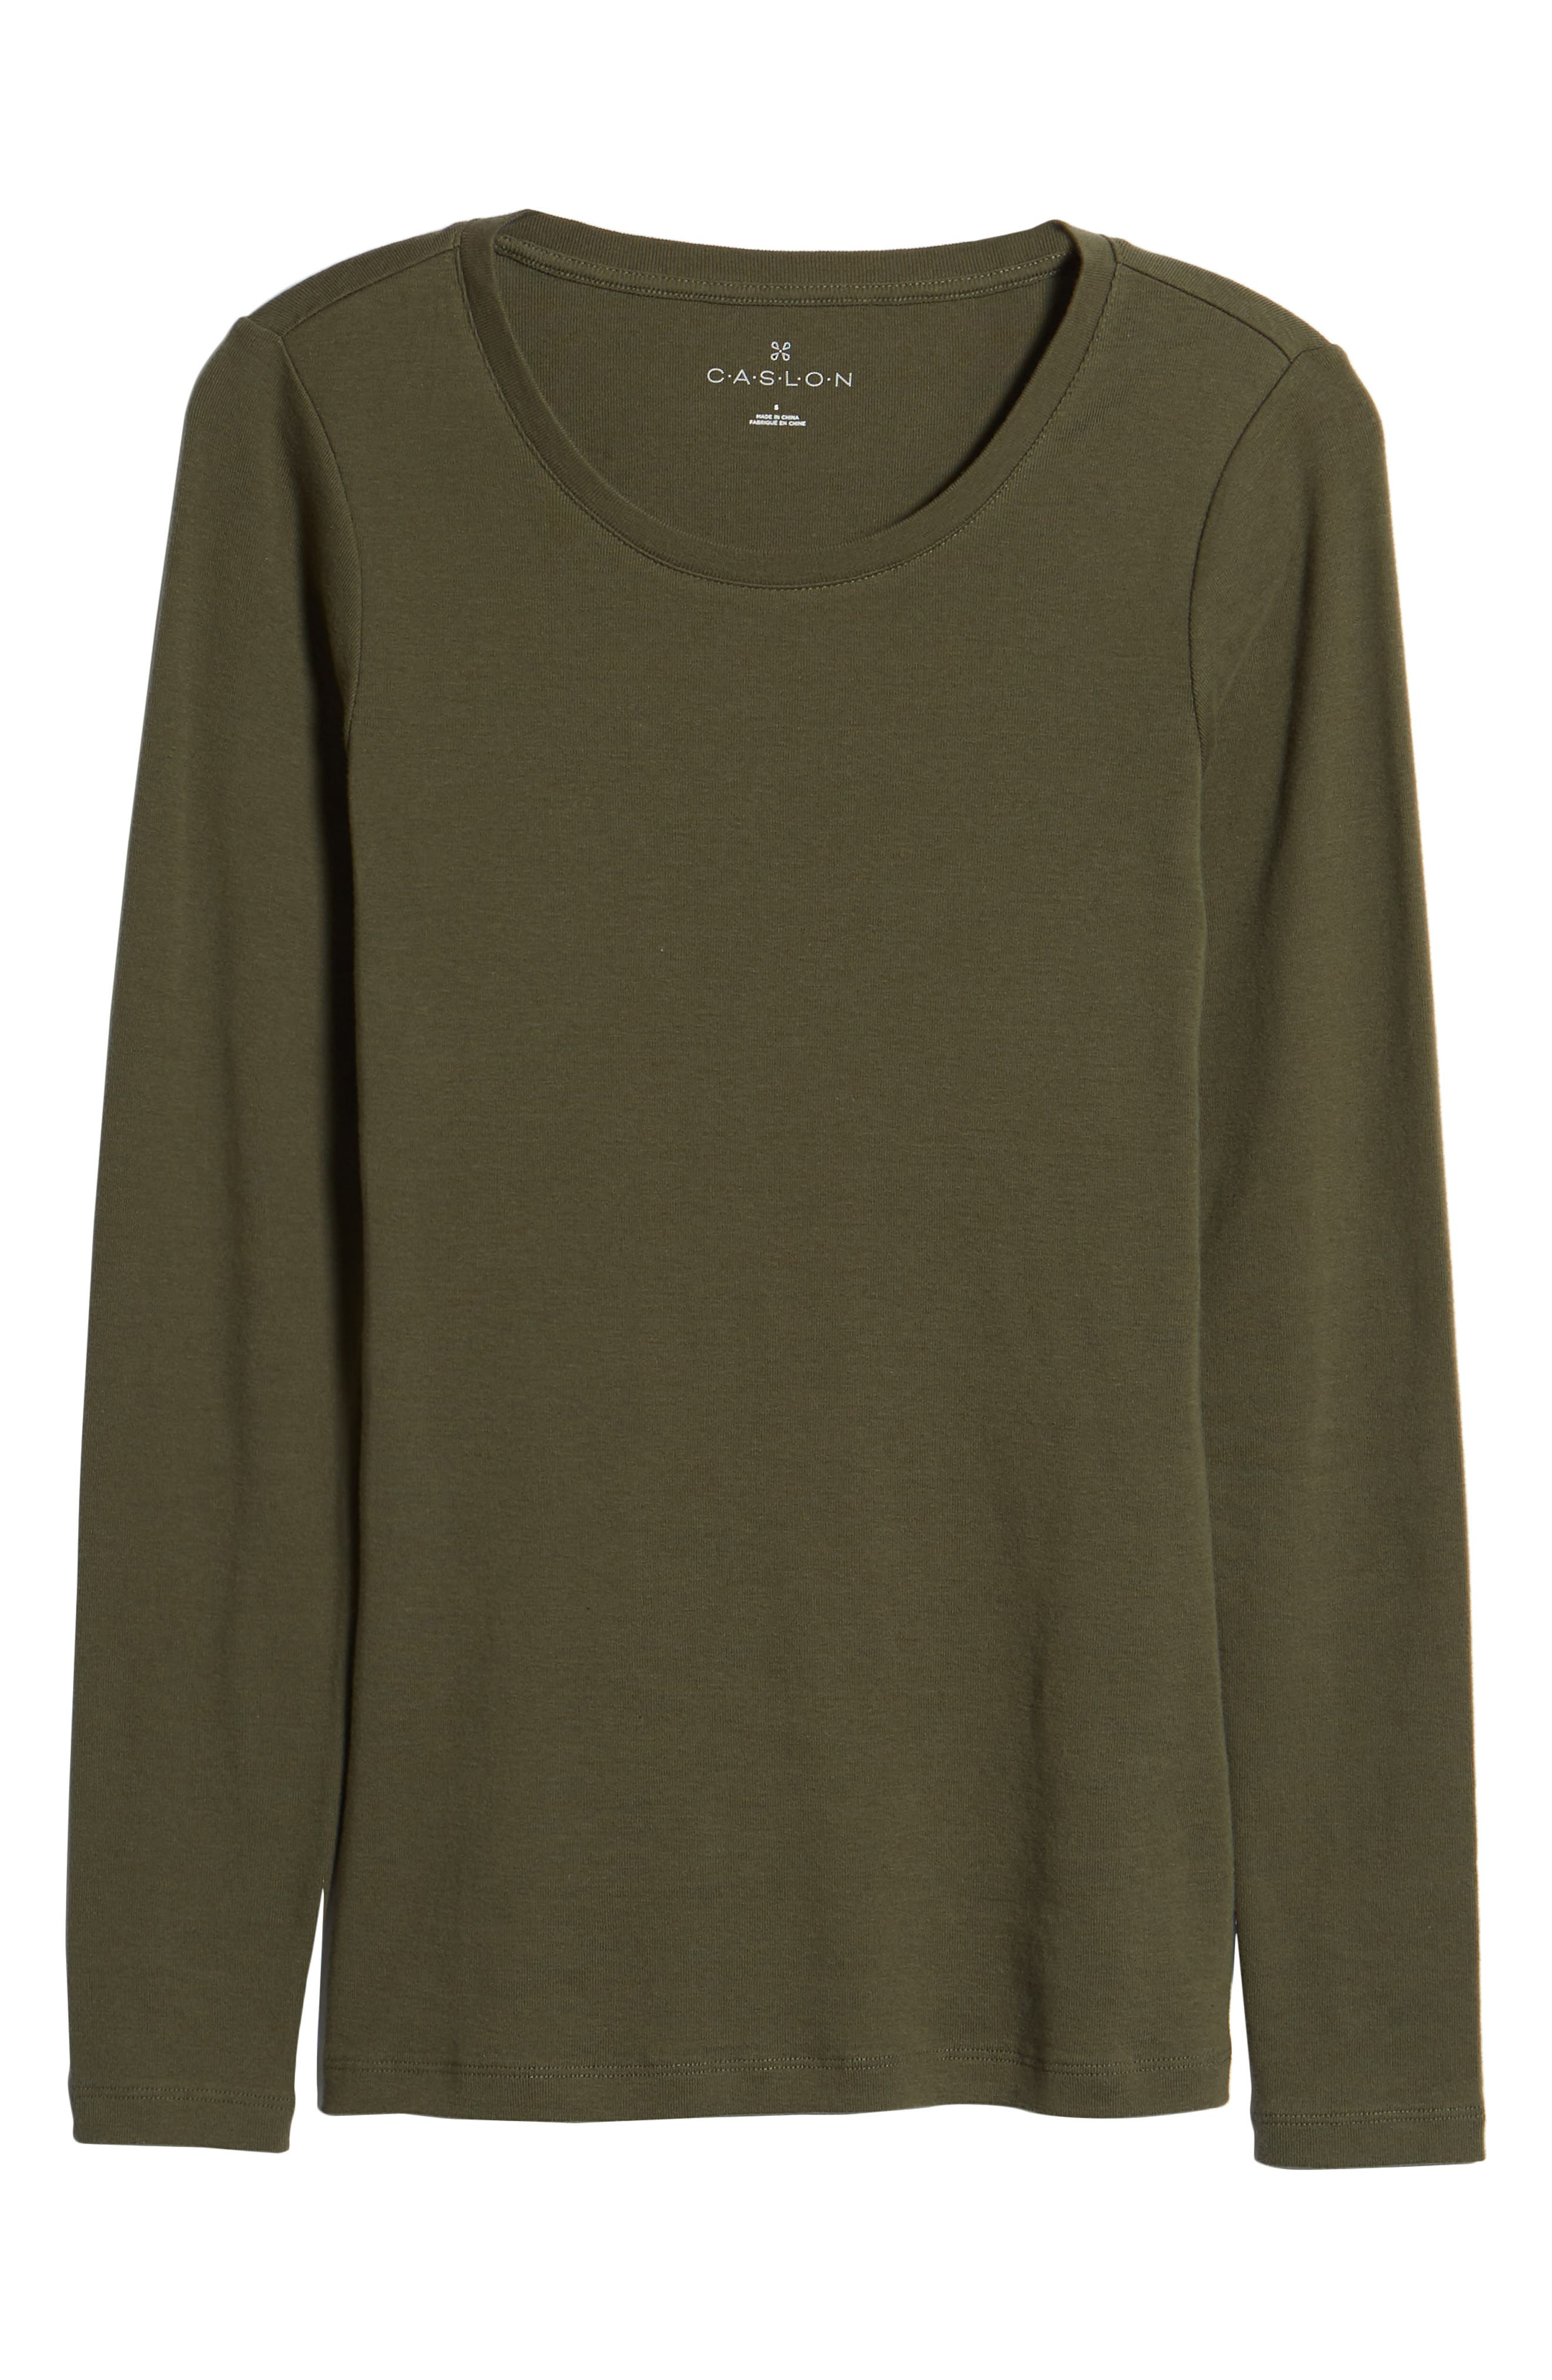 Long Sleeve Scoop Neck Cotton Tee,                             Alternate thumbnail 7, color,                             300